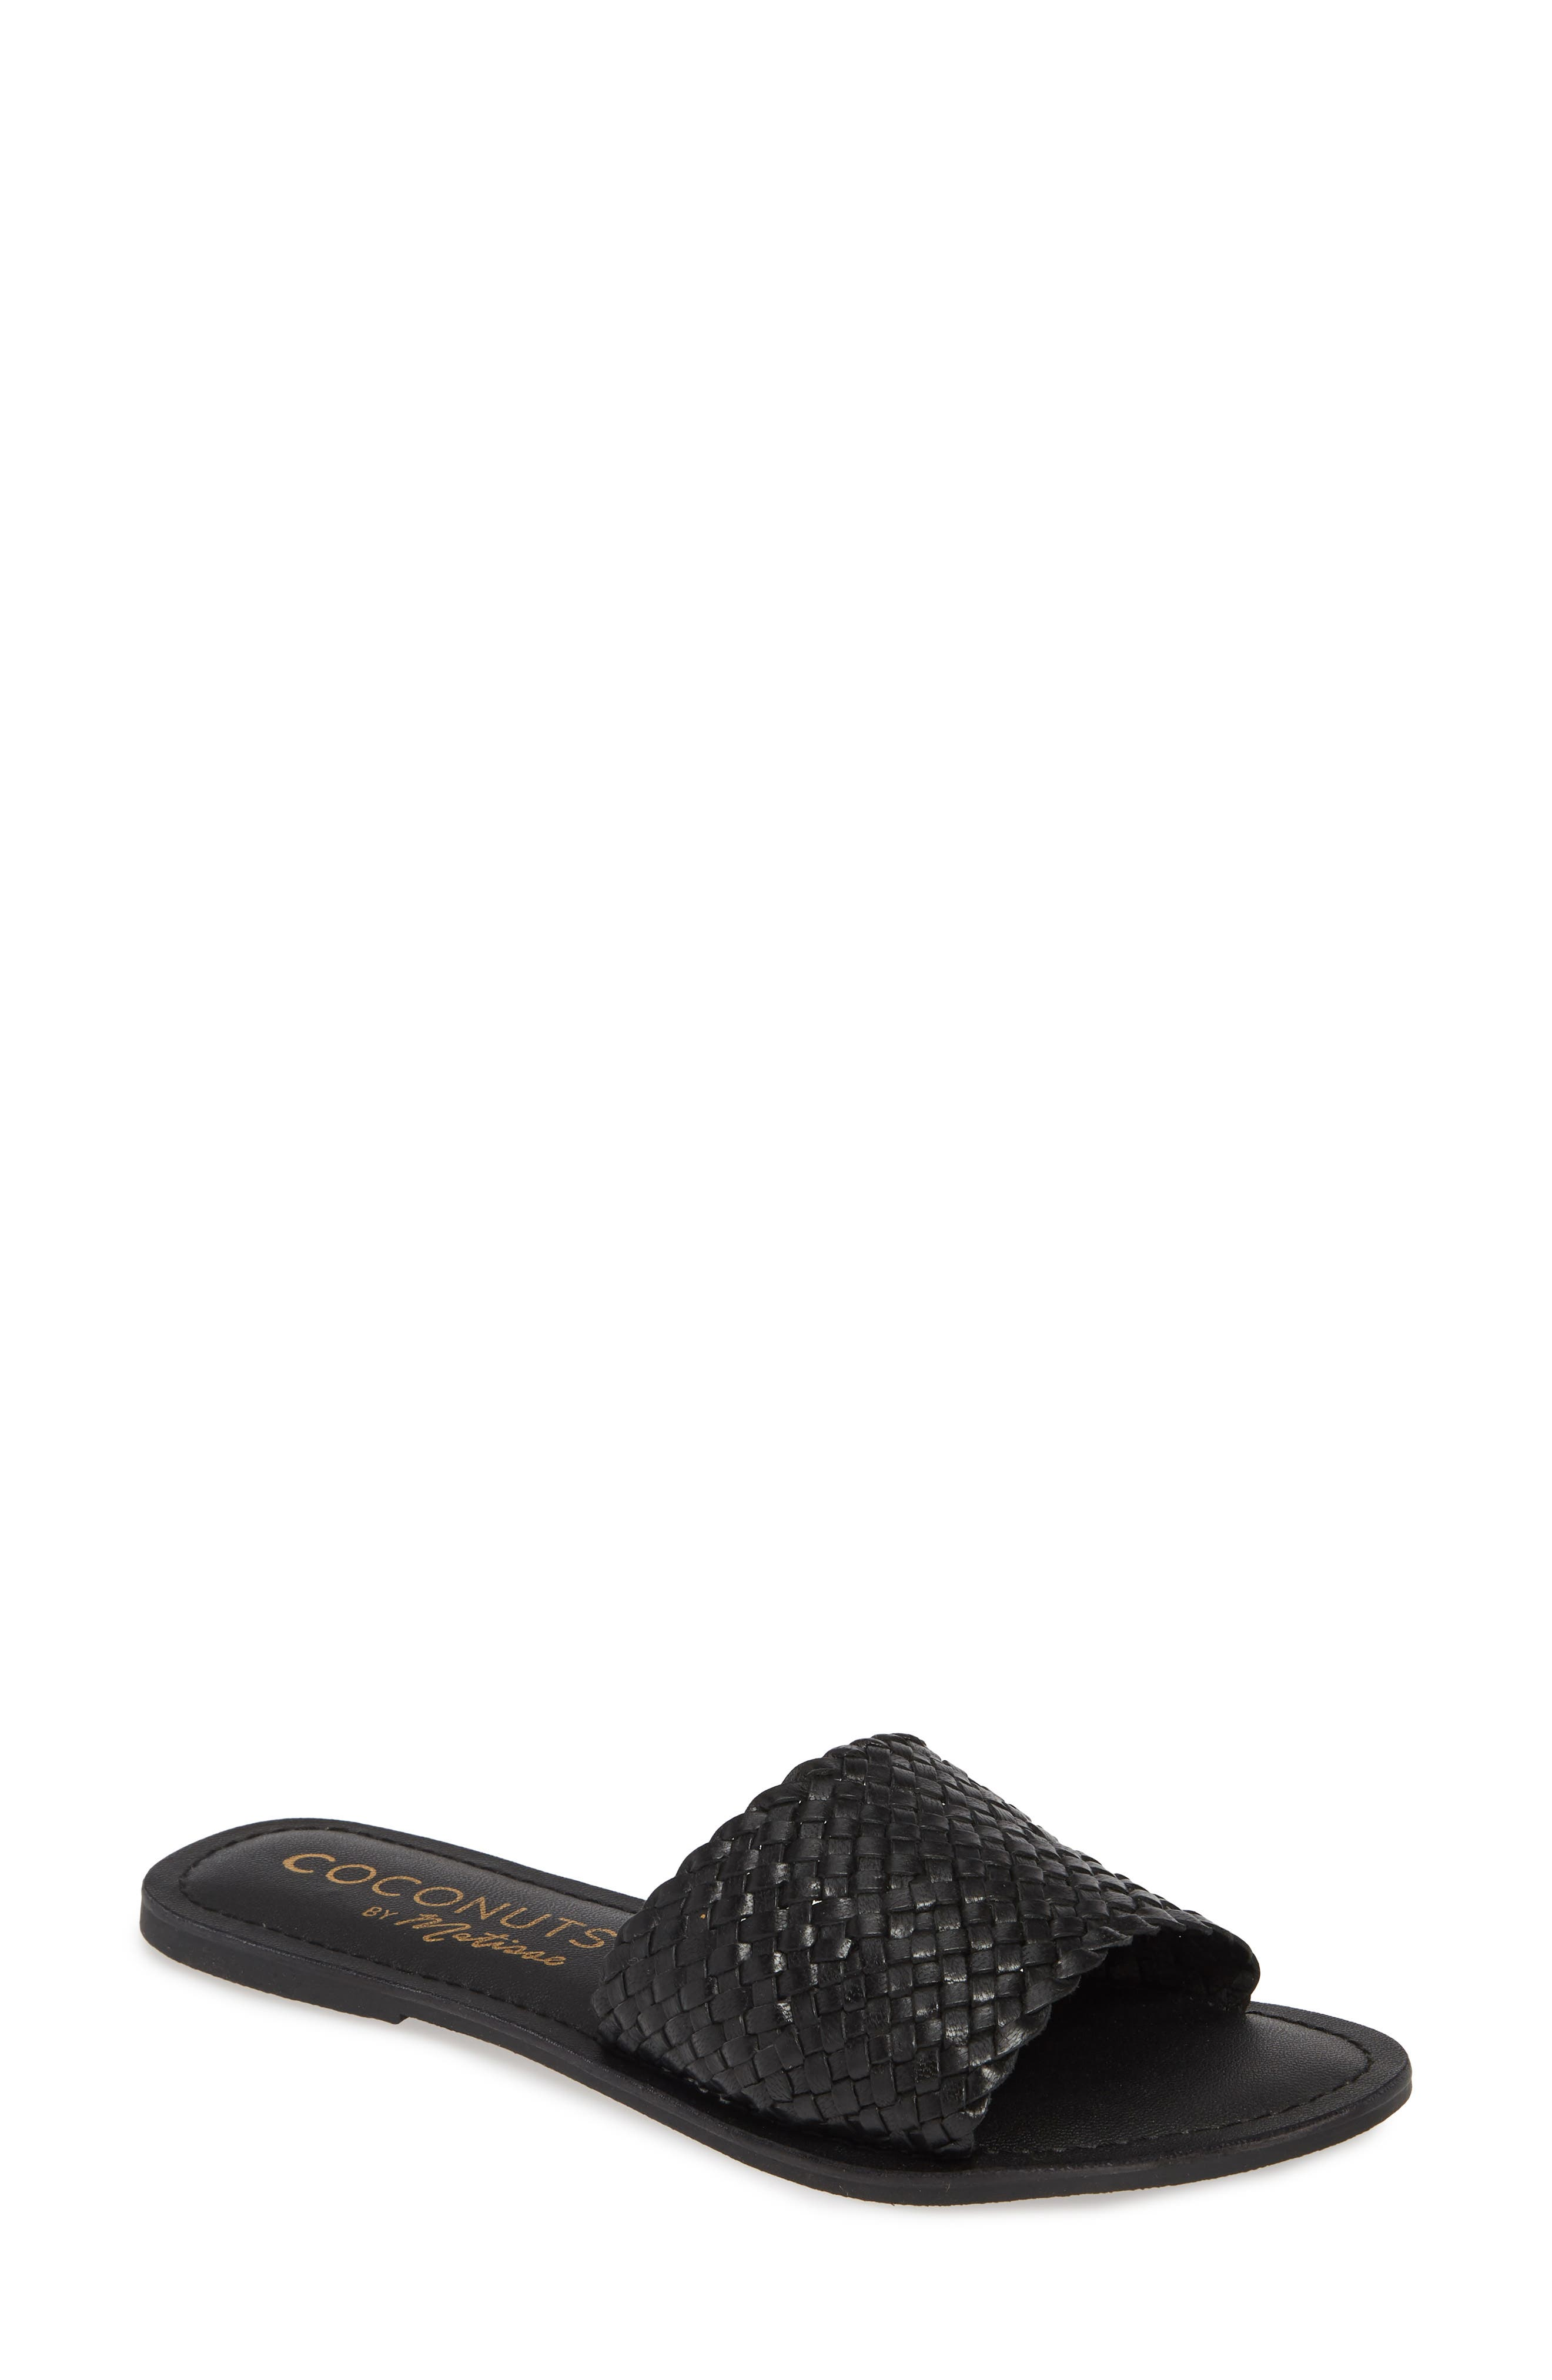 COCONUTS BY MATISSE,                             Zuma Woven Slide Sandal,                             Main thumbnail 1, color,                             BLACK LEATHER